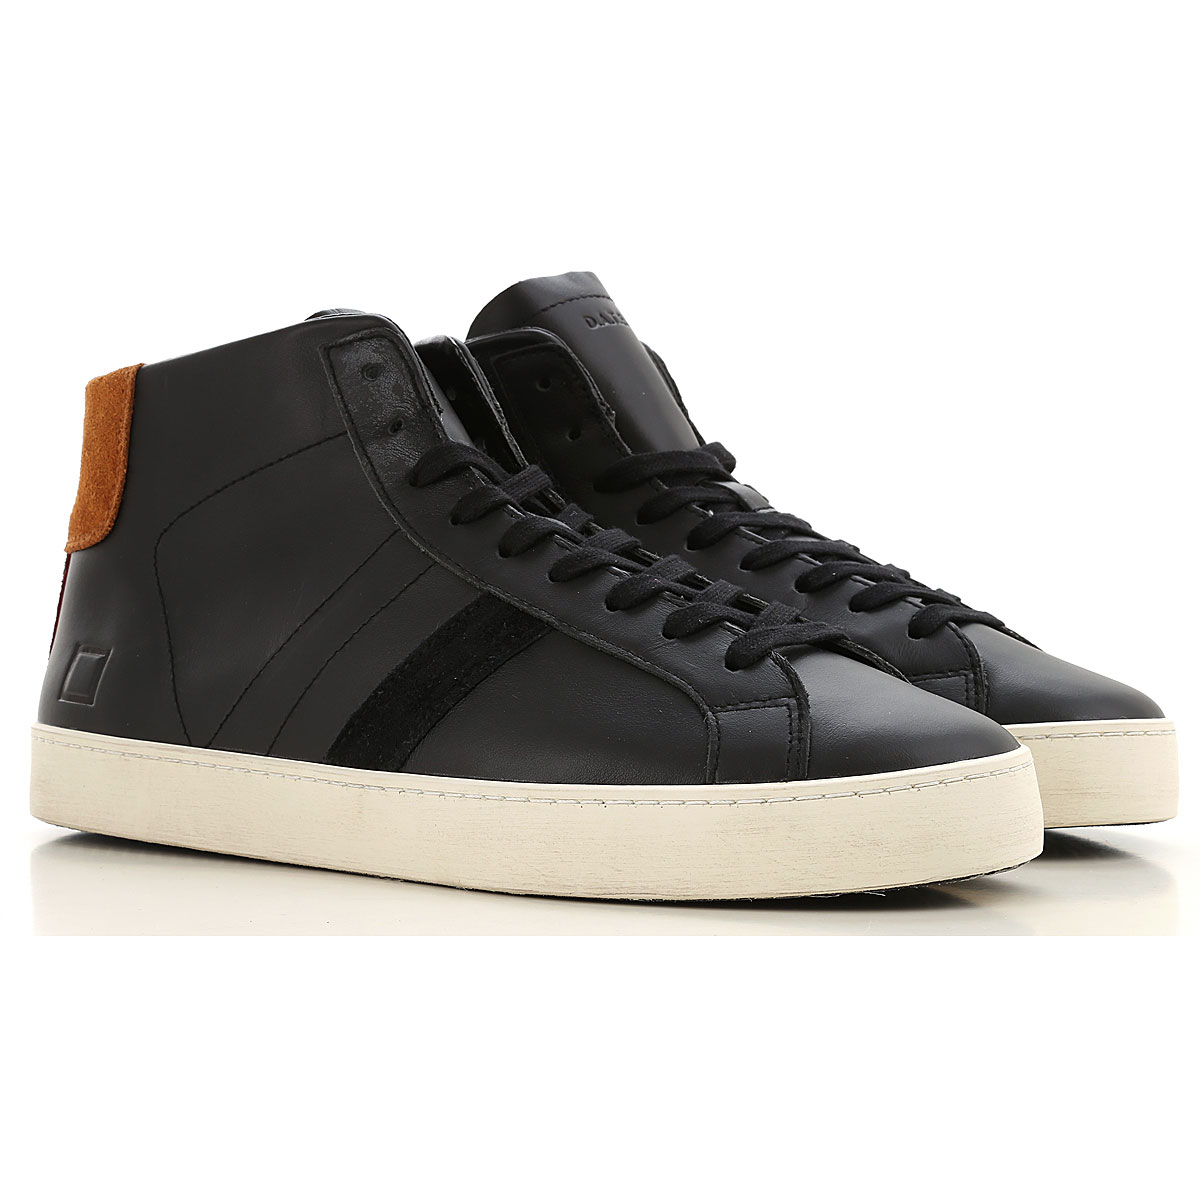 D.A.T.E. Sneakers for Men, Black, Leather, 2019, 7